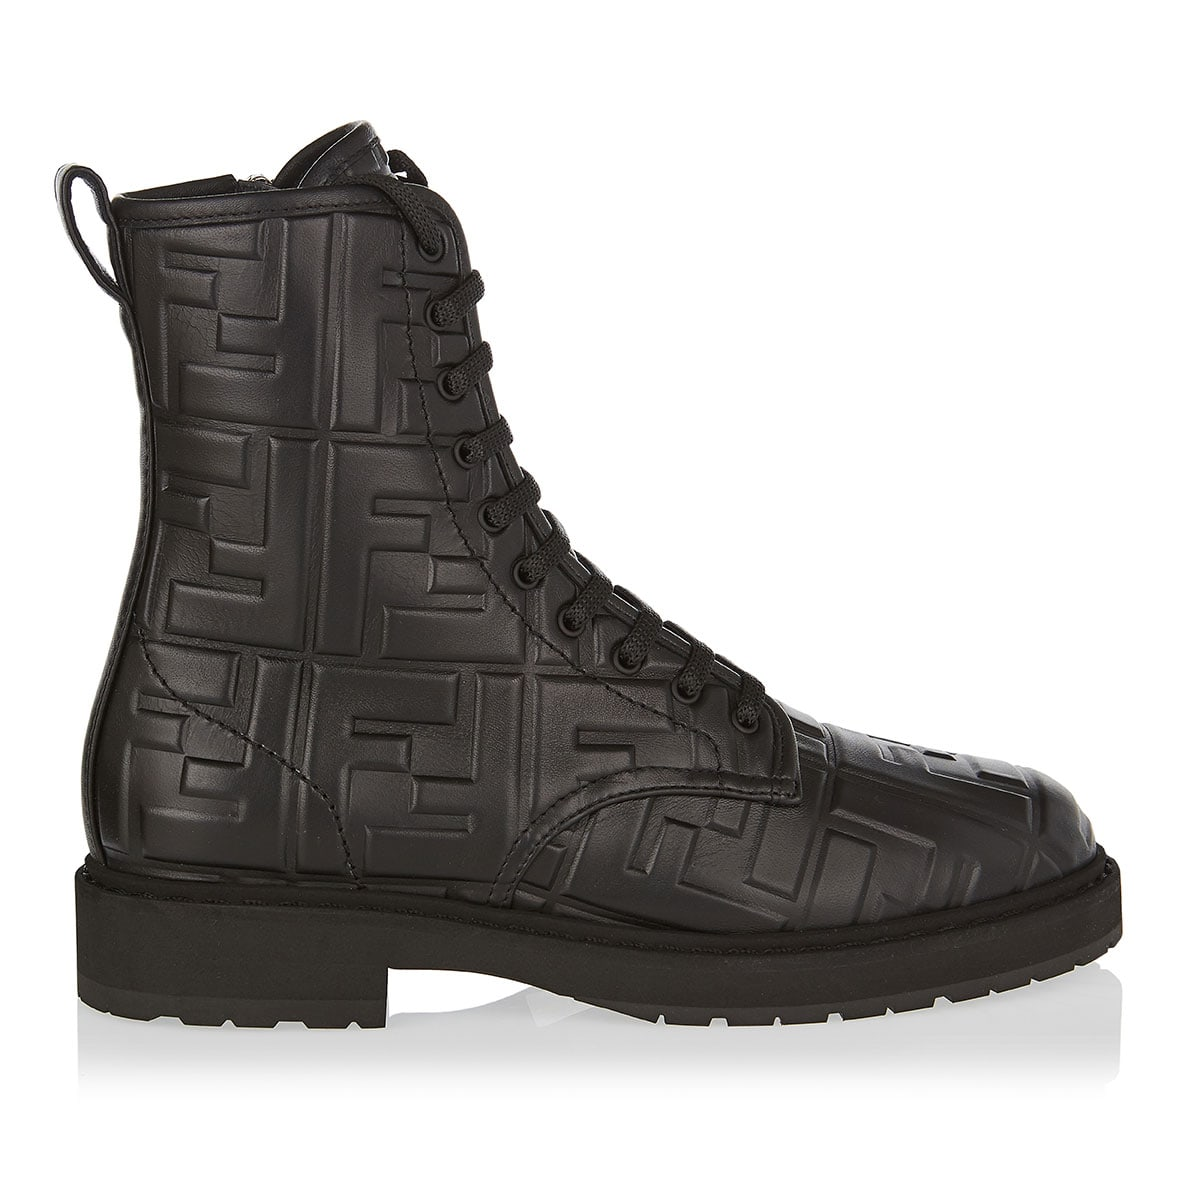 FF-embossed combat boots